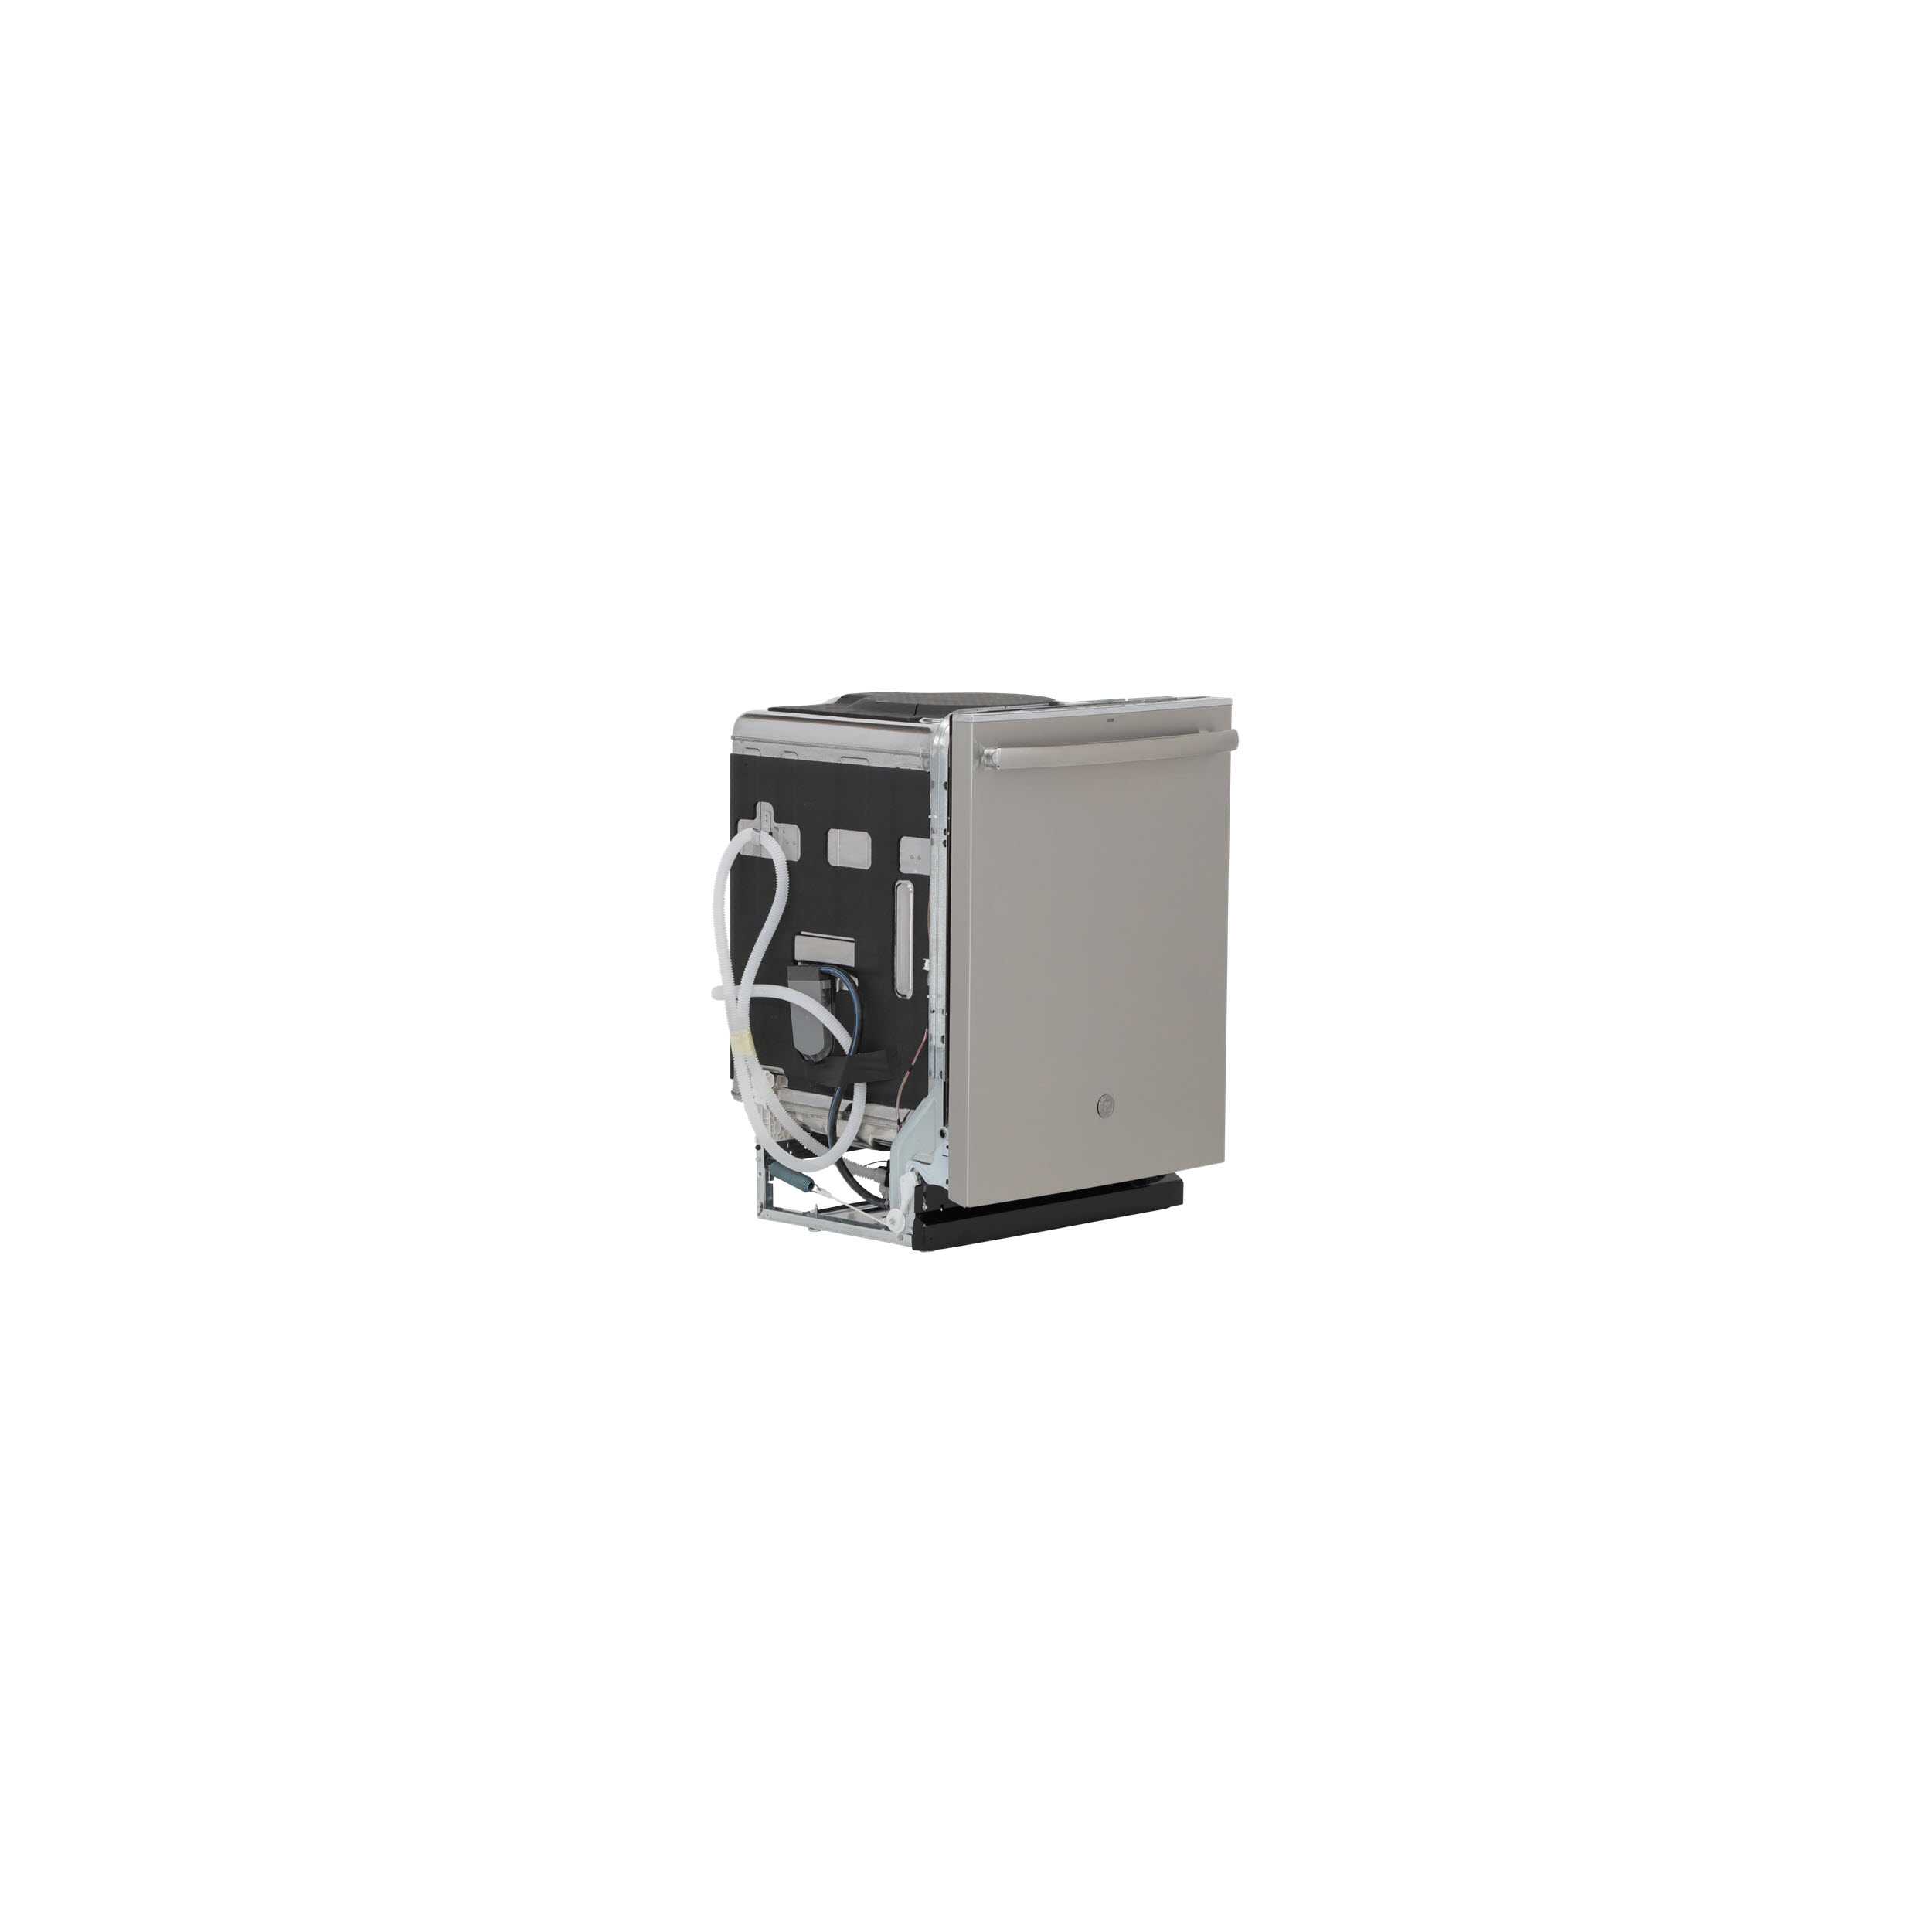 Model: GDT655SSJSS | GE® Stainless Steel Interior Dishwasher with Hidden Controls